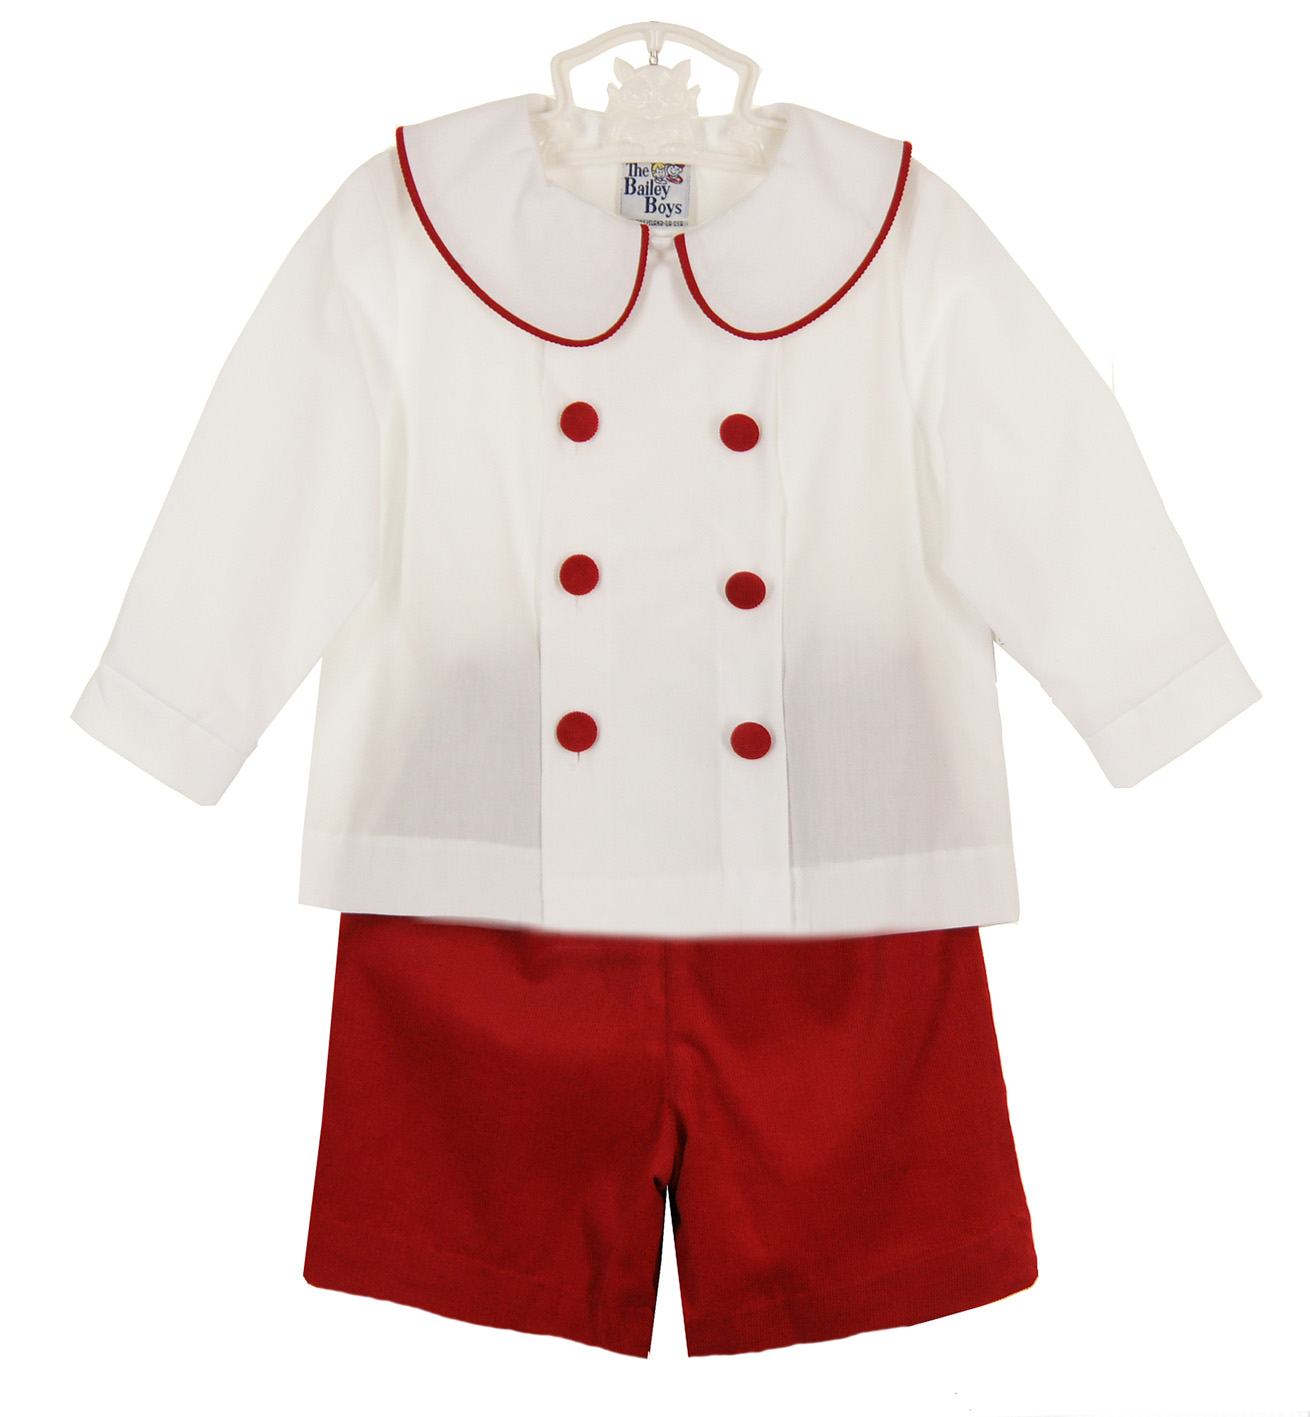 Bailey Boys red shorts set,brother sister matching ...